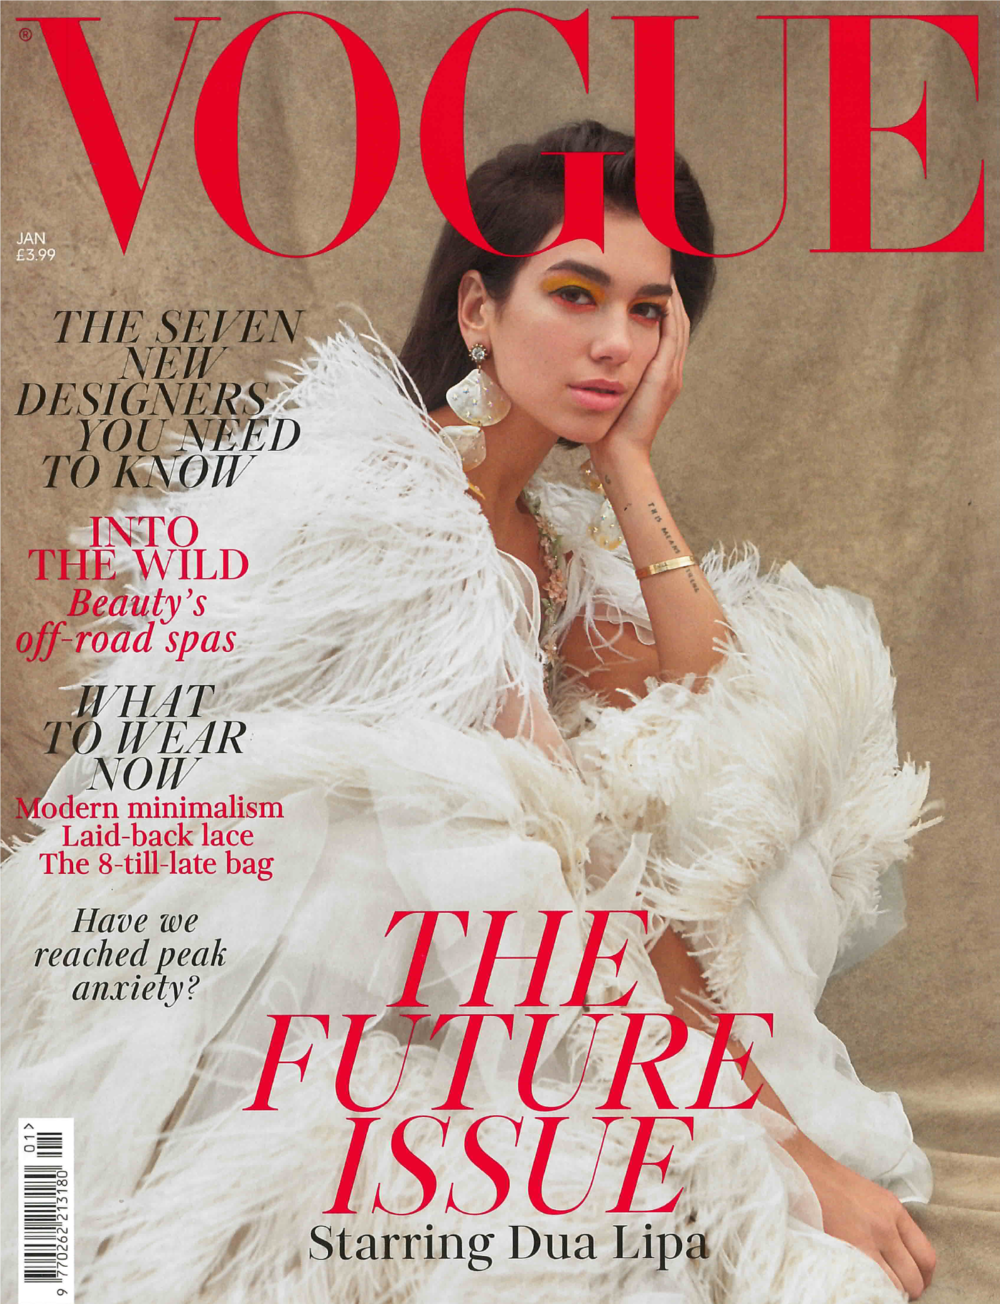 British Vogue Jan. 2019 Cover